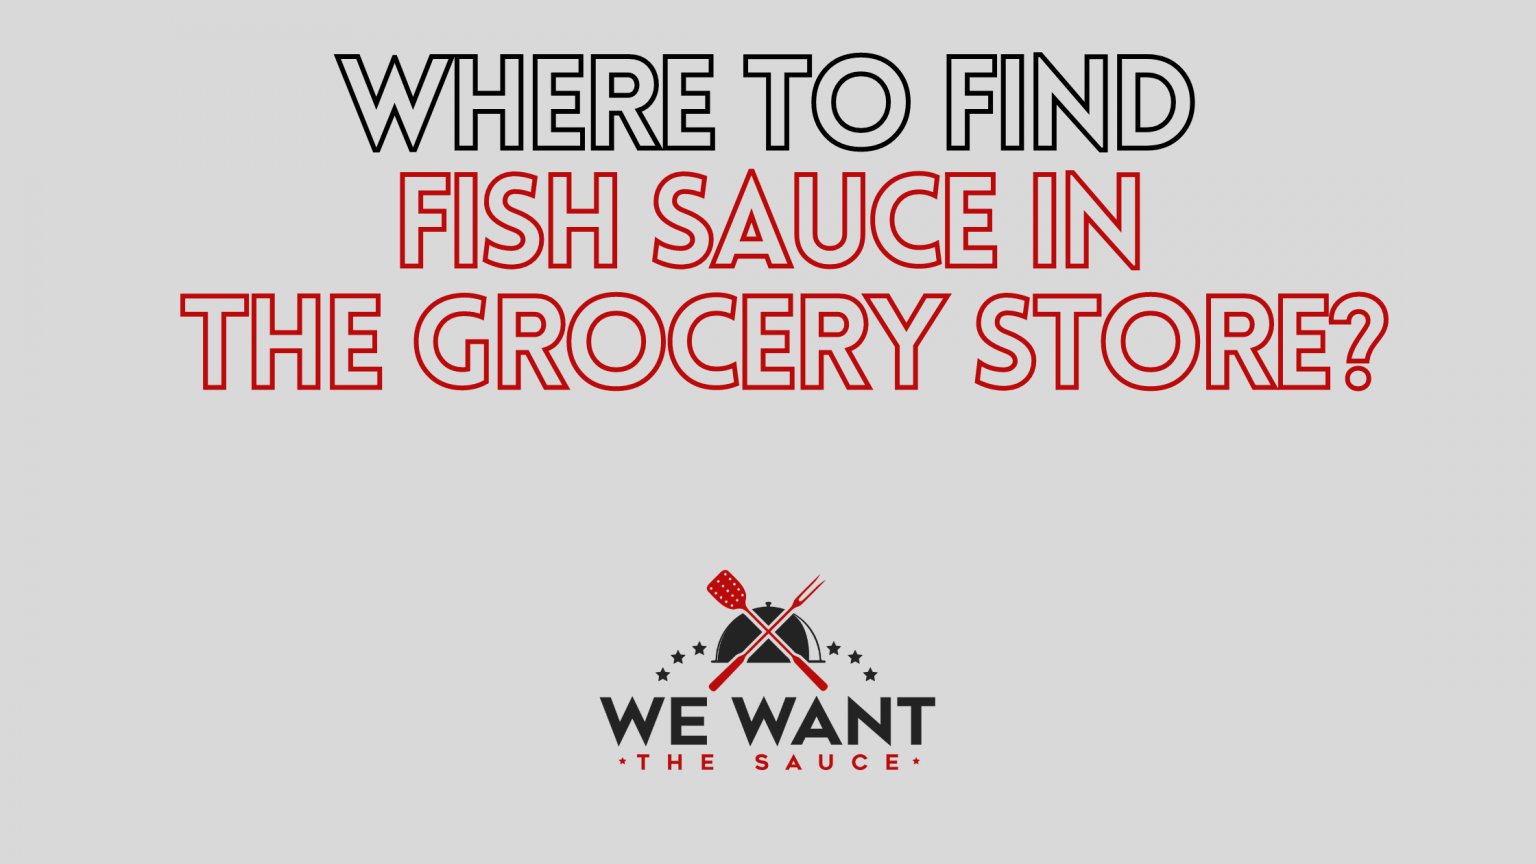 Where To Find Fish Sauce In Grocery Store